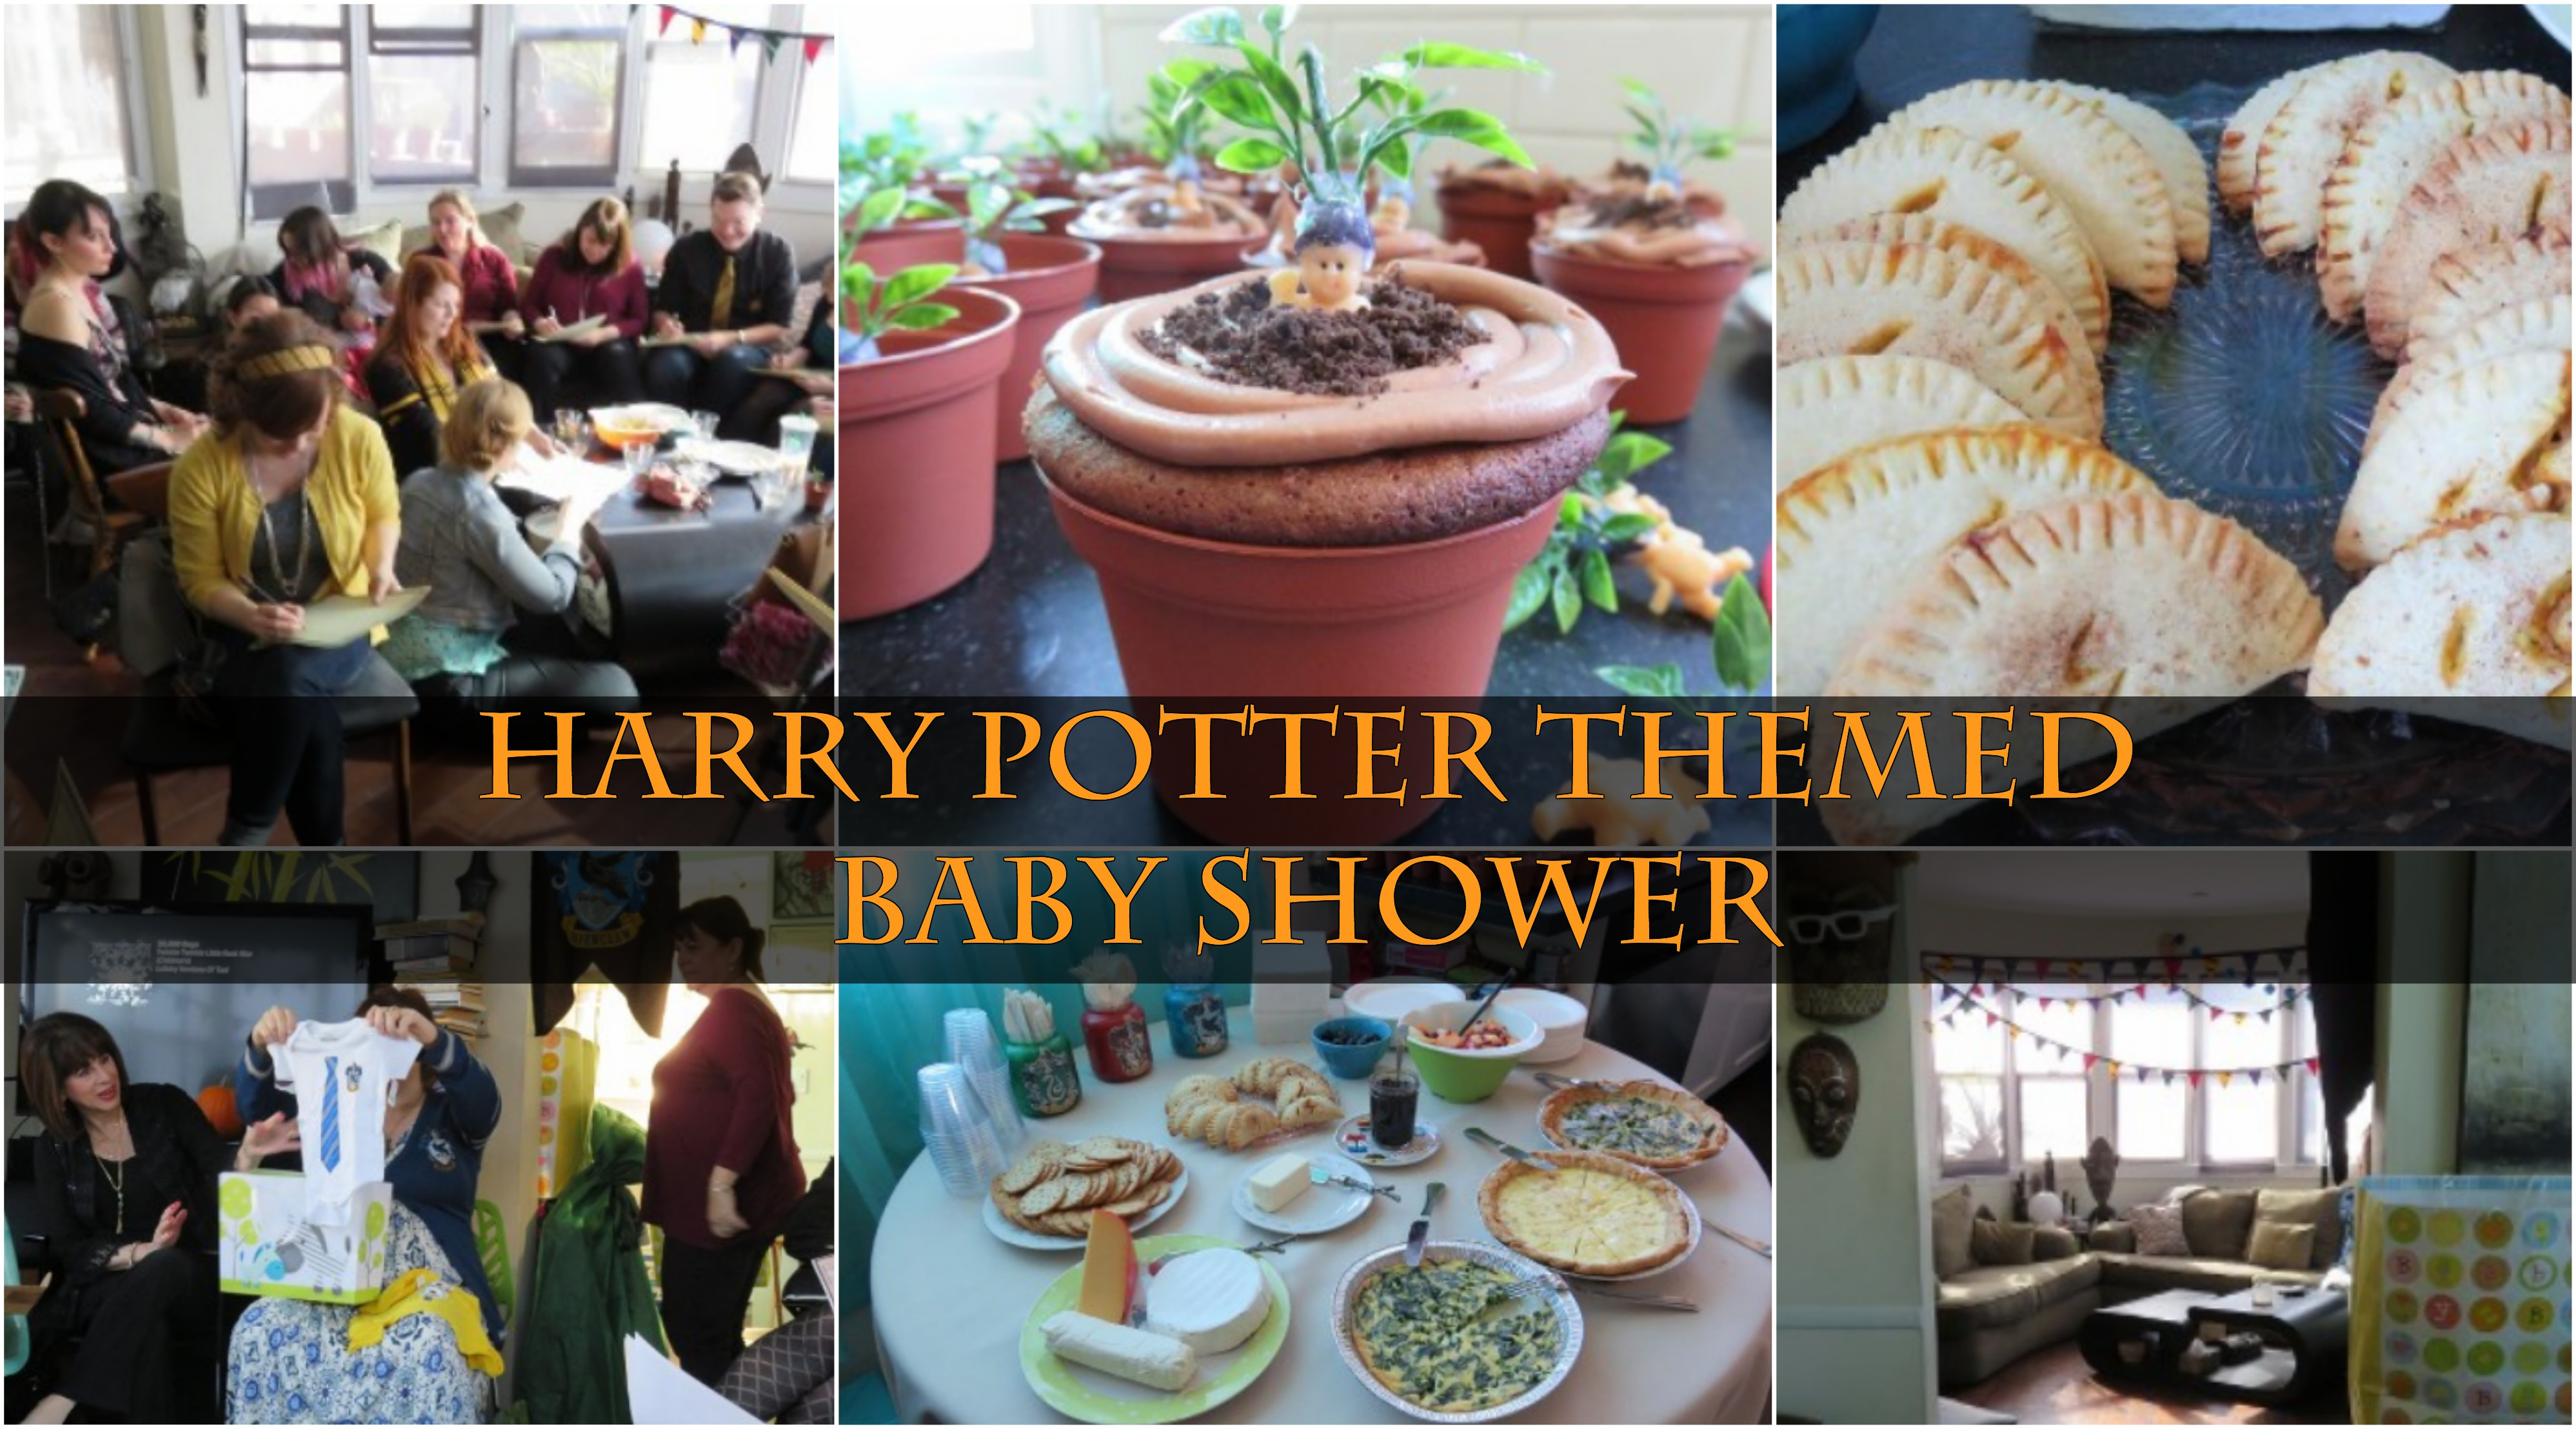 Geek Chic Events: Harry Potter Themed Baby Shower